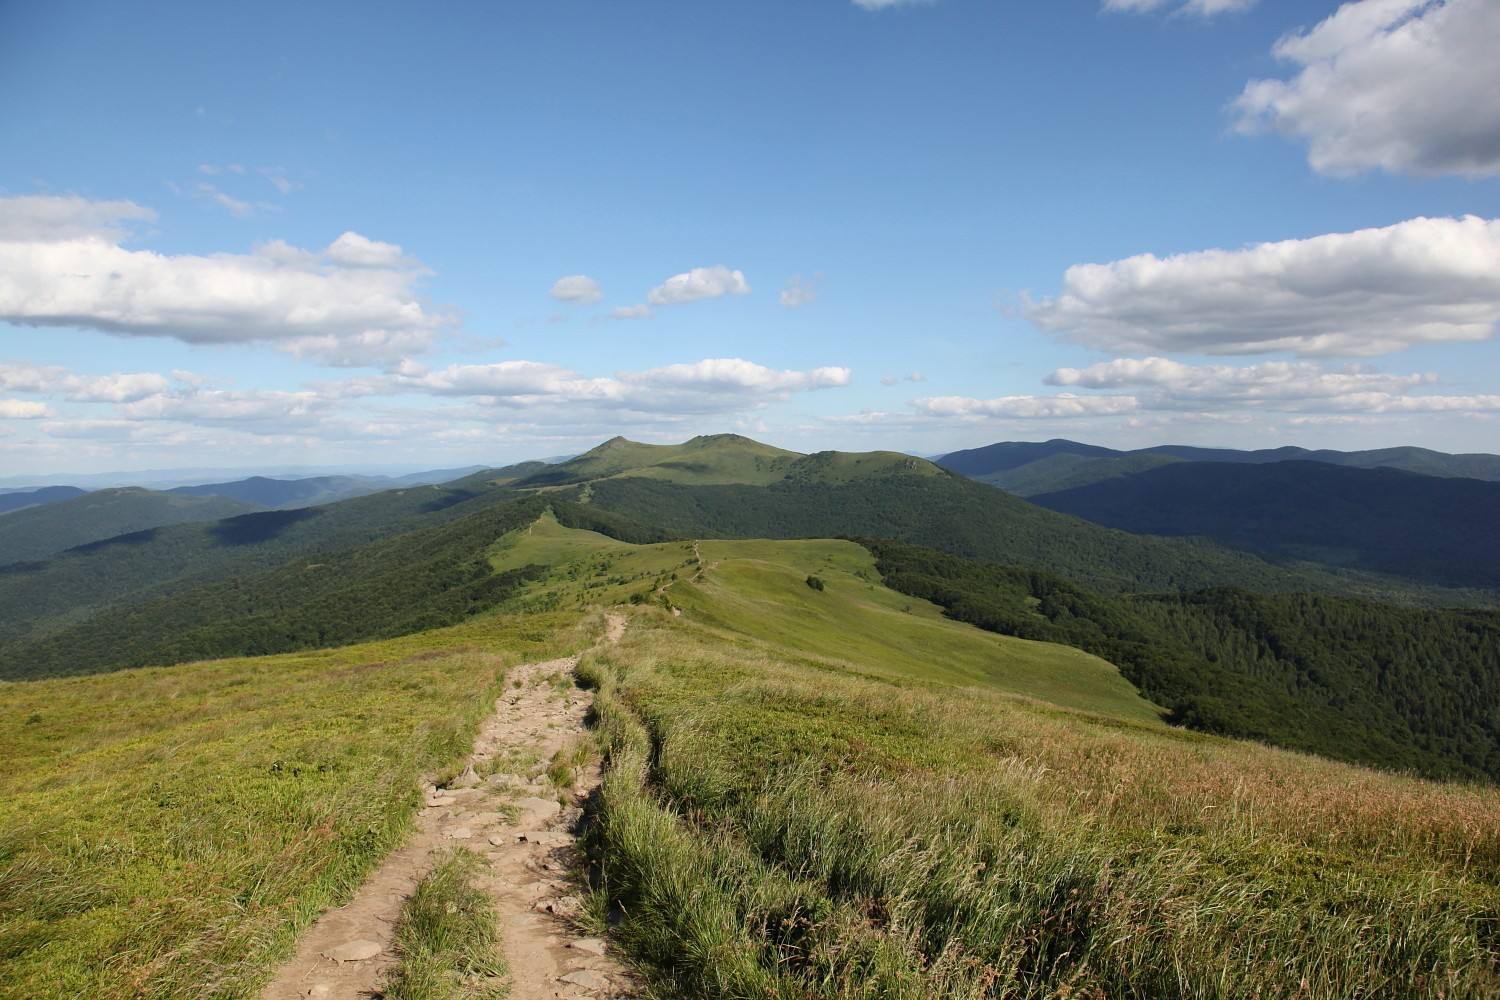 View of the Bieszczady Mountains, in the background is visible the highest peak called Tarnica (photo by Sebastian R. Bielak)